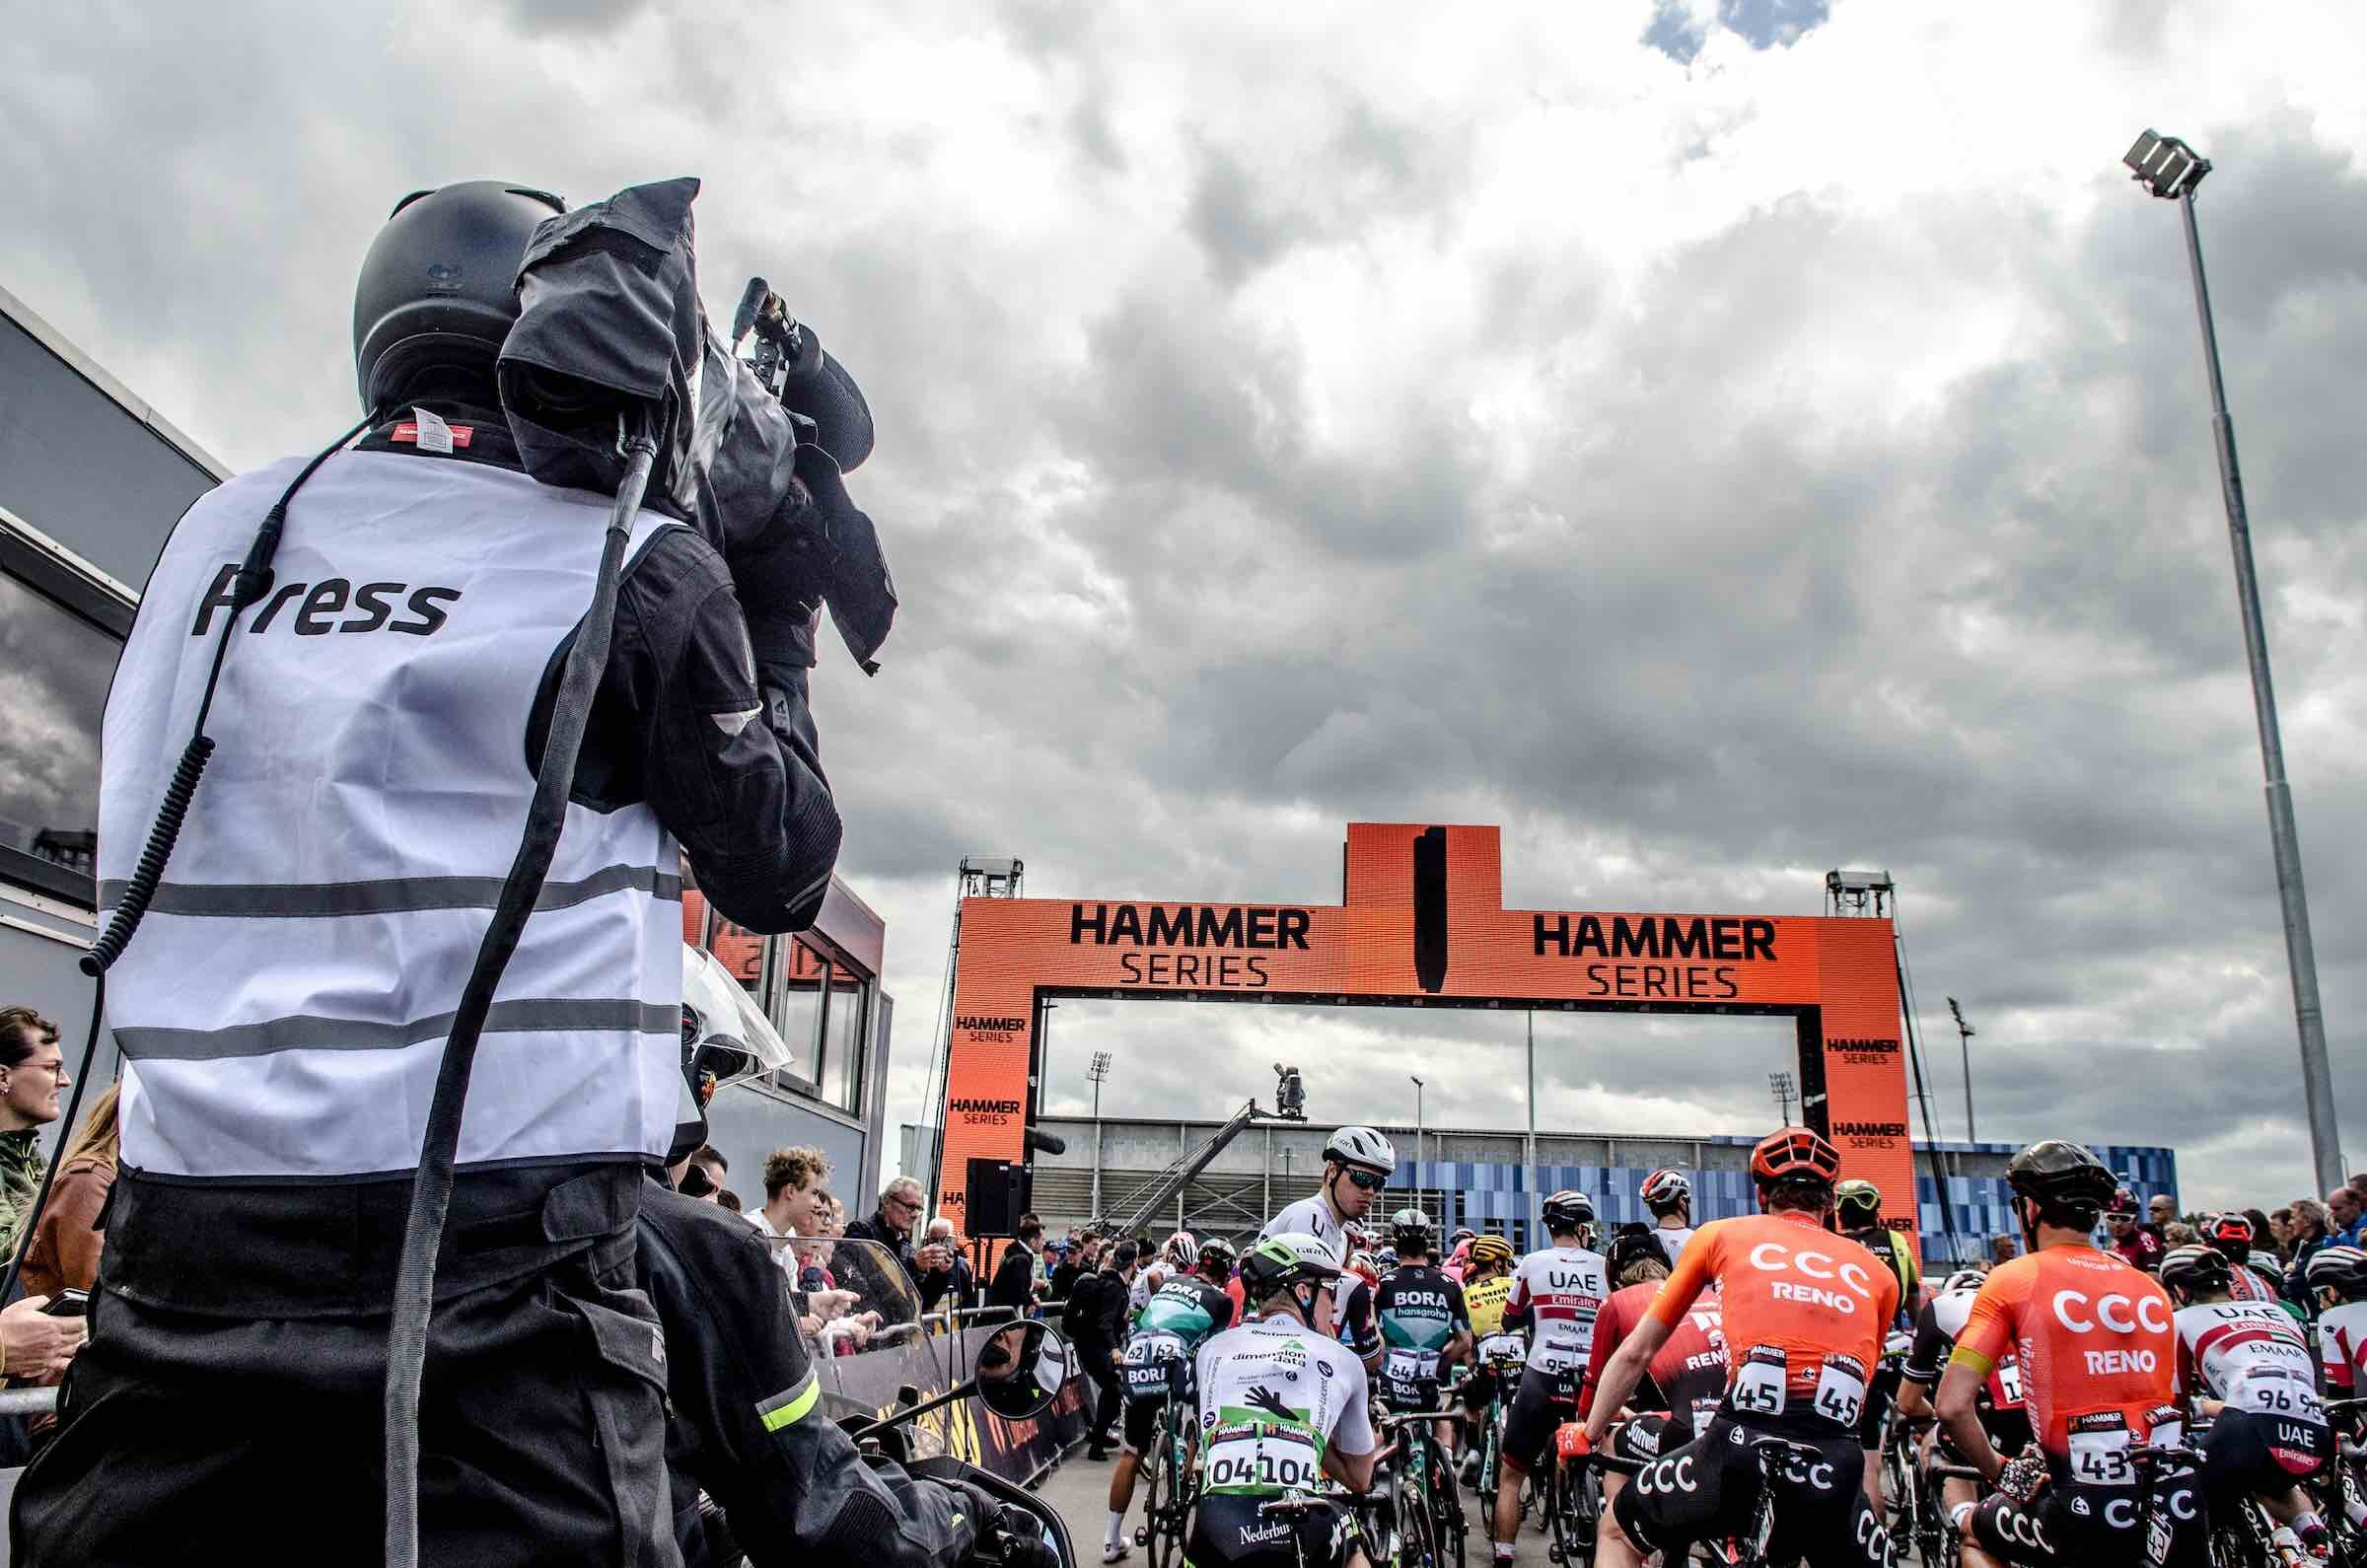 Teams line up at the start in Hammer Limburg this year